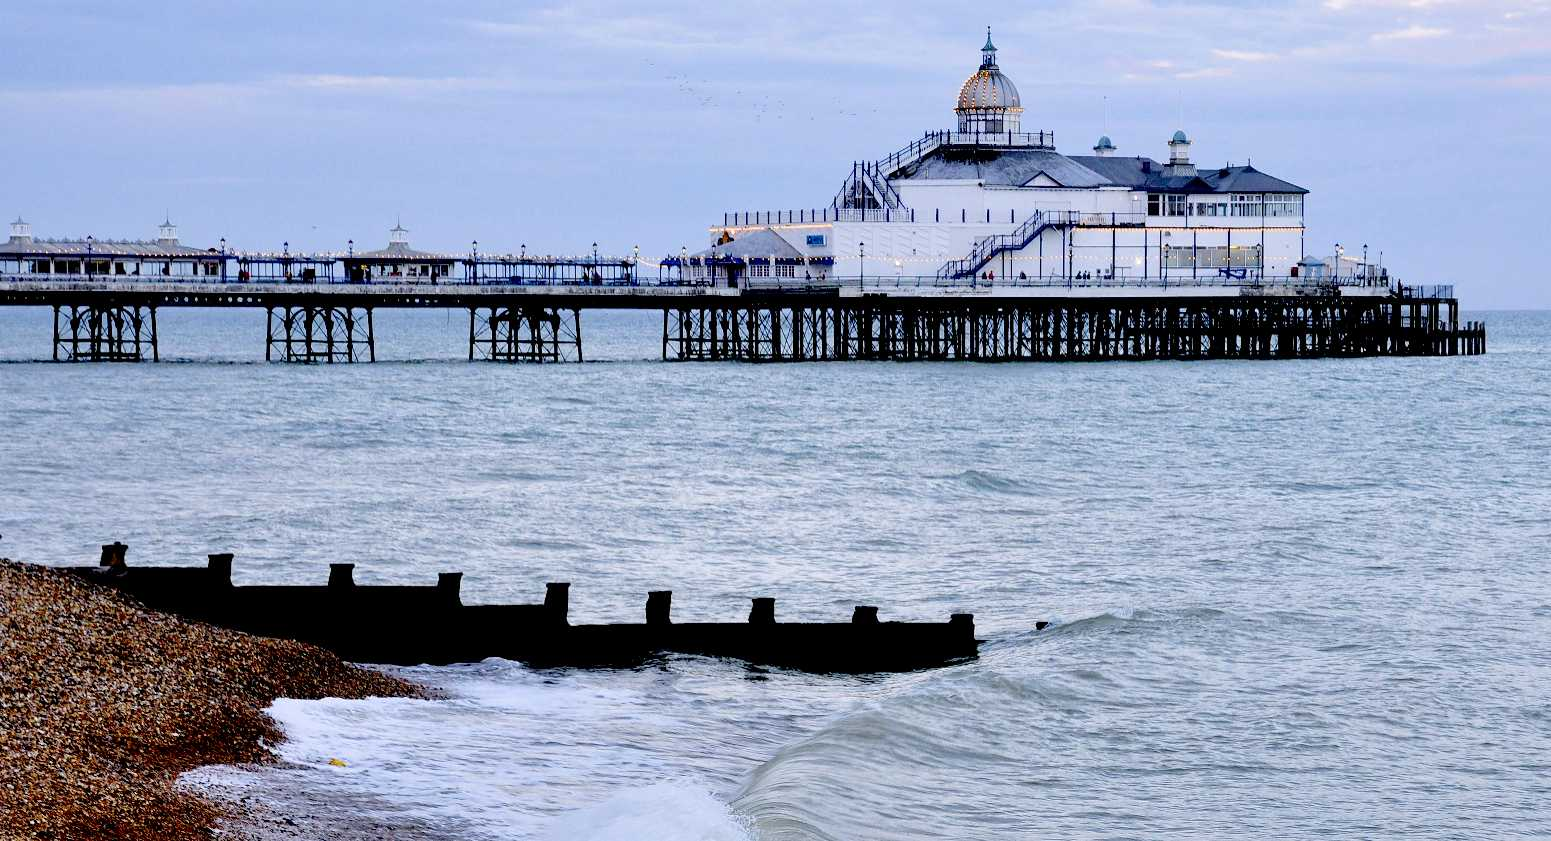 Eastbourne Pier is a monument at risk